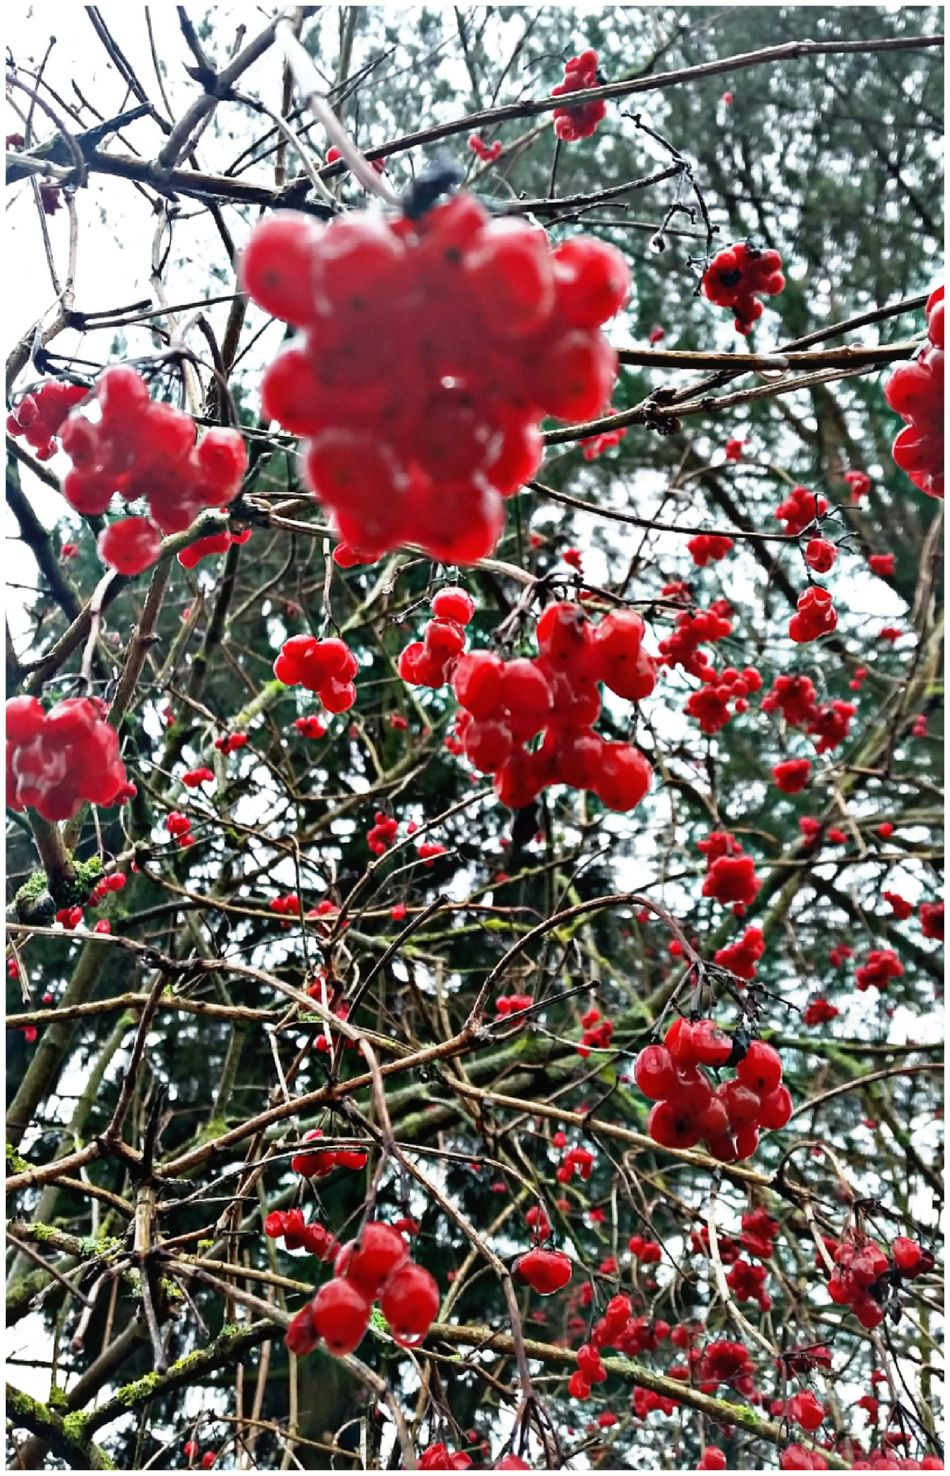 Plants 🌱 Berrys Red Color Freshness Beauty In Nature Outdoor Photography